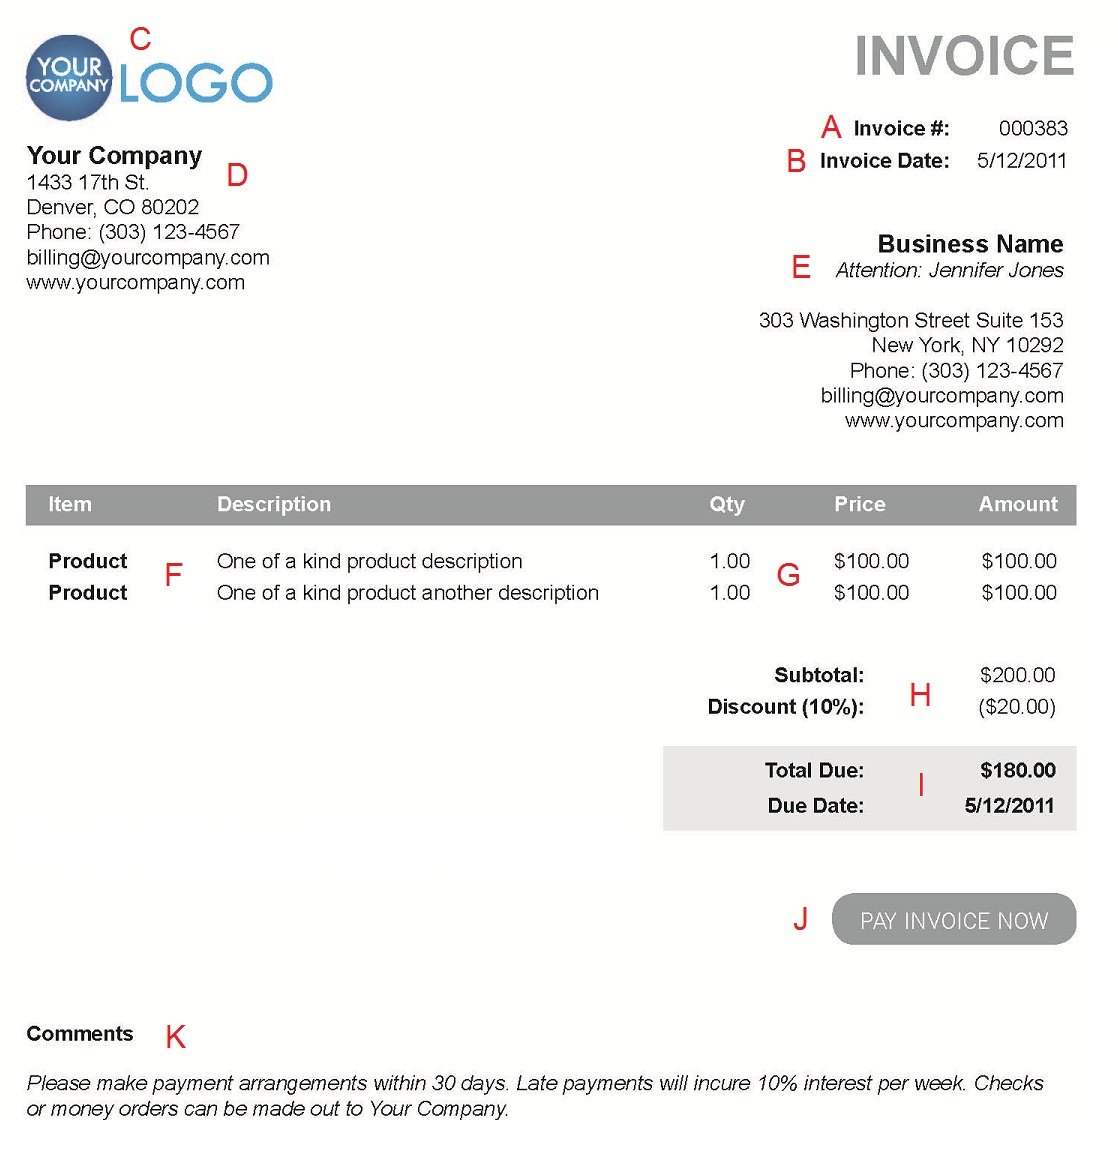 Sandiegolocksmithsus  Pleasing The  Different Sections Of An Electronic Payment Invoice With Glamorous A  With Agreeable Invoice  Also Example Vat Invoice In Addition Sole Trader Invoices And Interest On Late Payment Of Invoices As Well As Ford Fiesta Invoice Price Additionally Ballpark Invoicing From Paysimplecom With Sandiegolocksmithsus  Glamorous The  Different Sections Of An Electronic Payment Invoice With Agreeable A  And Pleasing Invoice  Also Example Vat Invoice In Addition Sole Trader Invoices From Paysimplecom